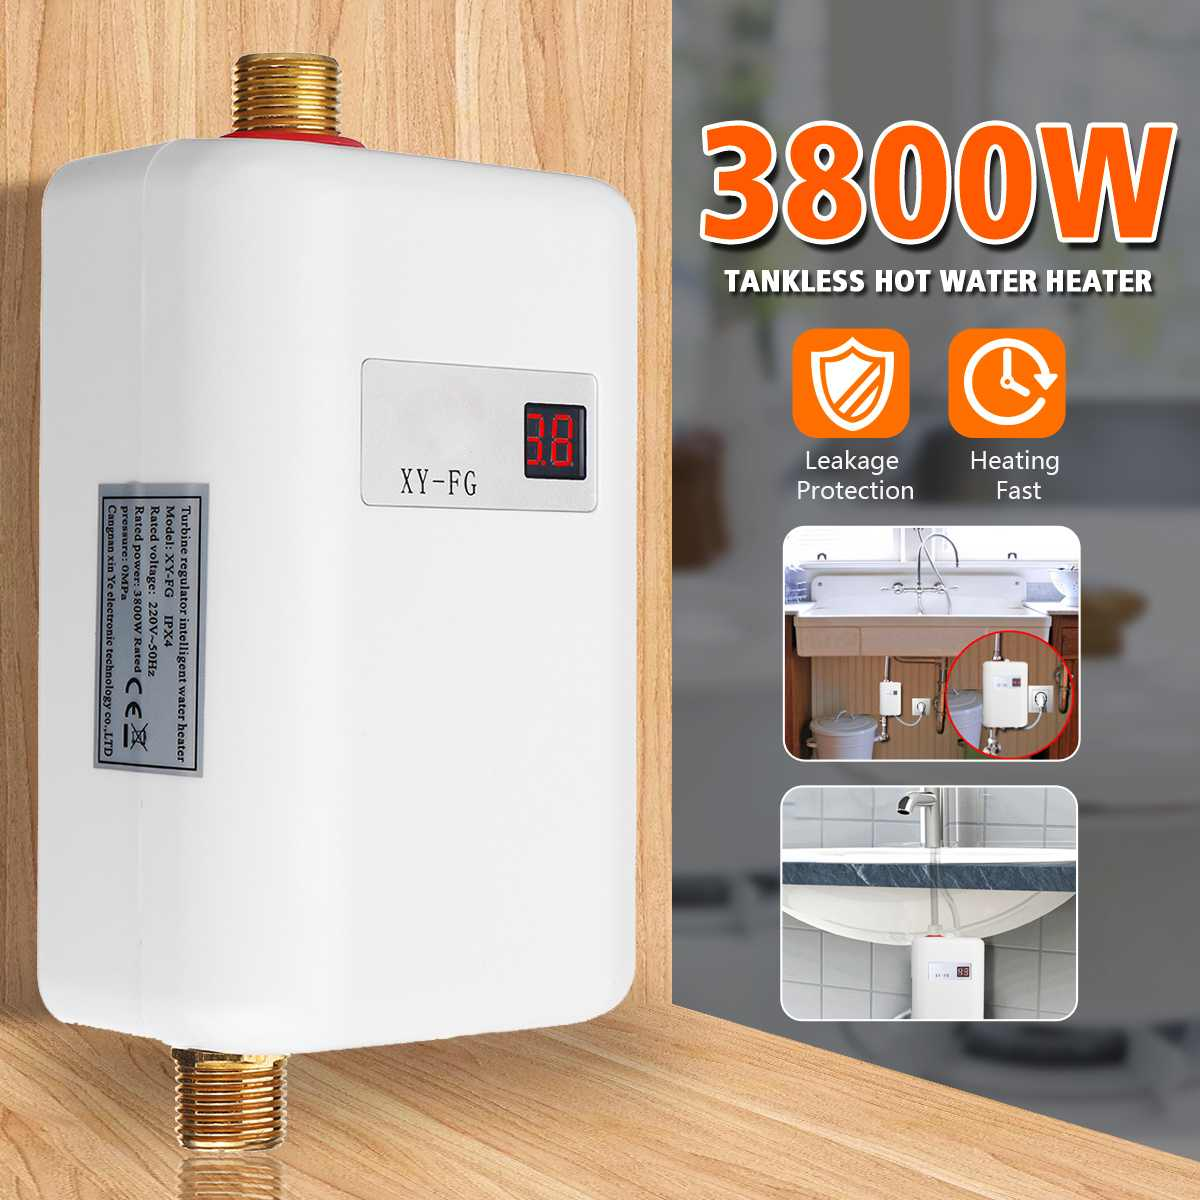 220V 3800W Water Heater Bathroom Faucet Shower Tankless Kitchen Instant Electric Hot Water Heater Tap Temperature LCD Display